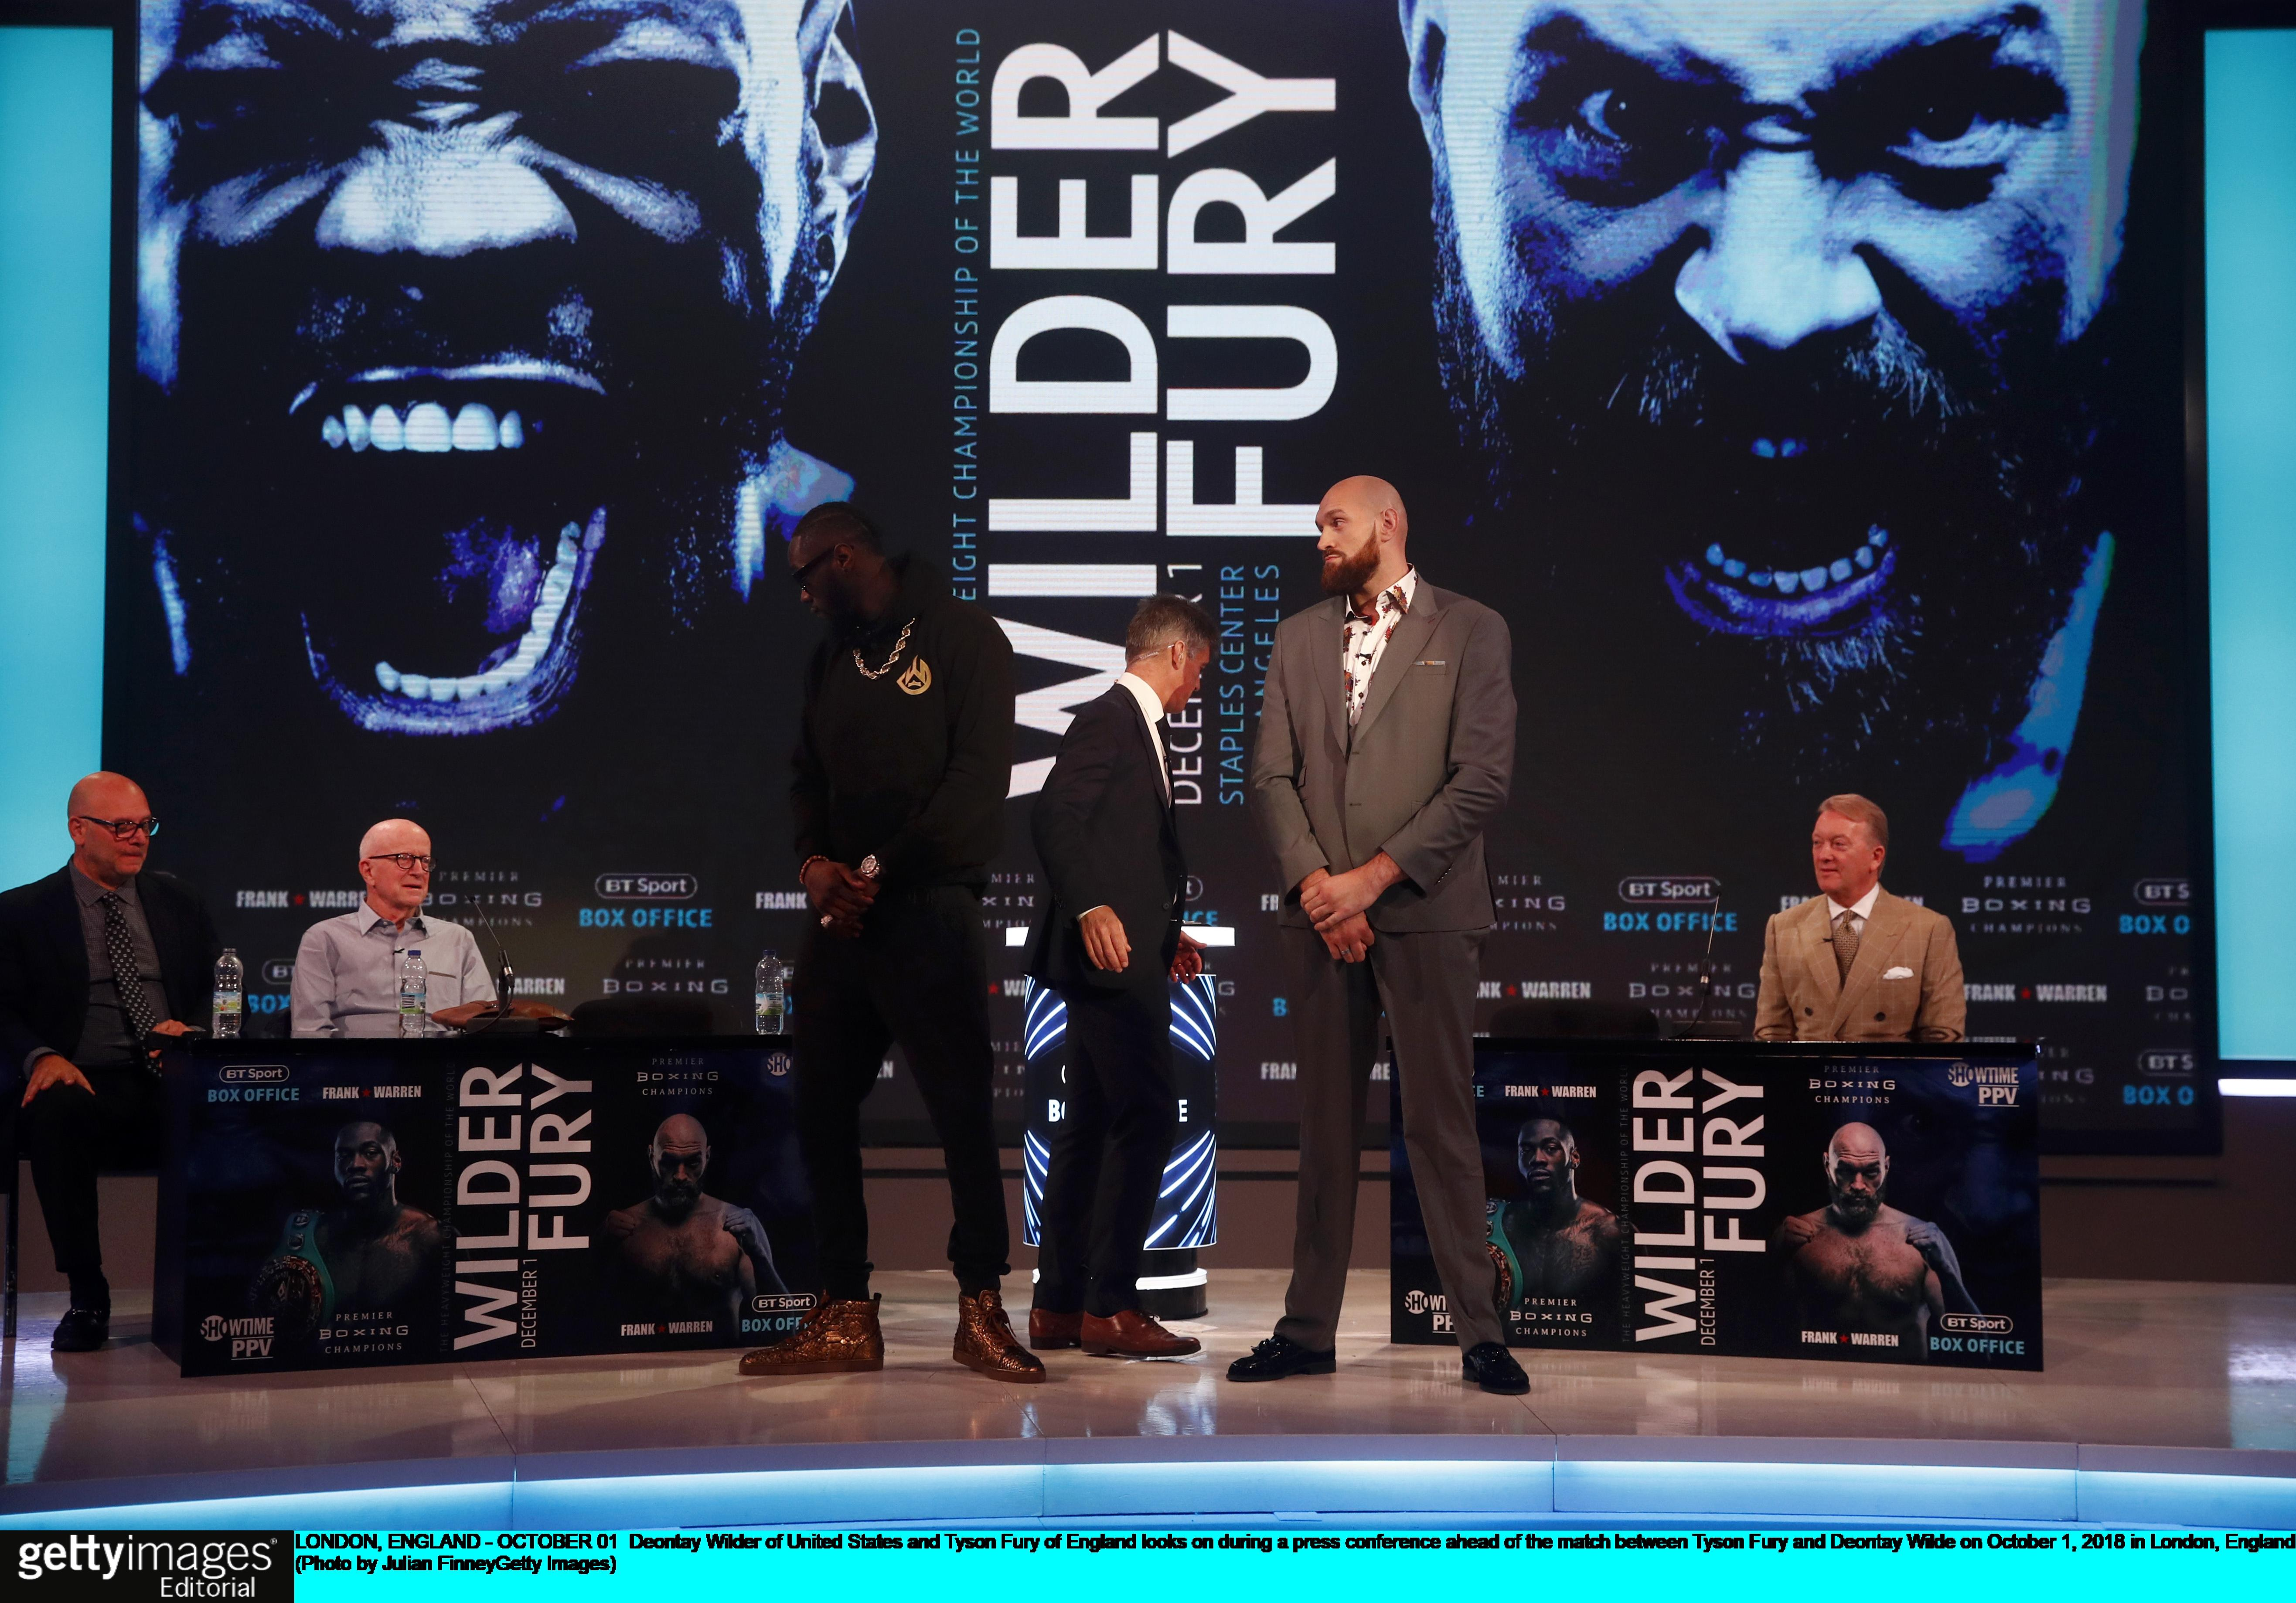 Deontay Wilder and Tyson Fury are scheduled to fight on December 1.